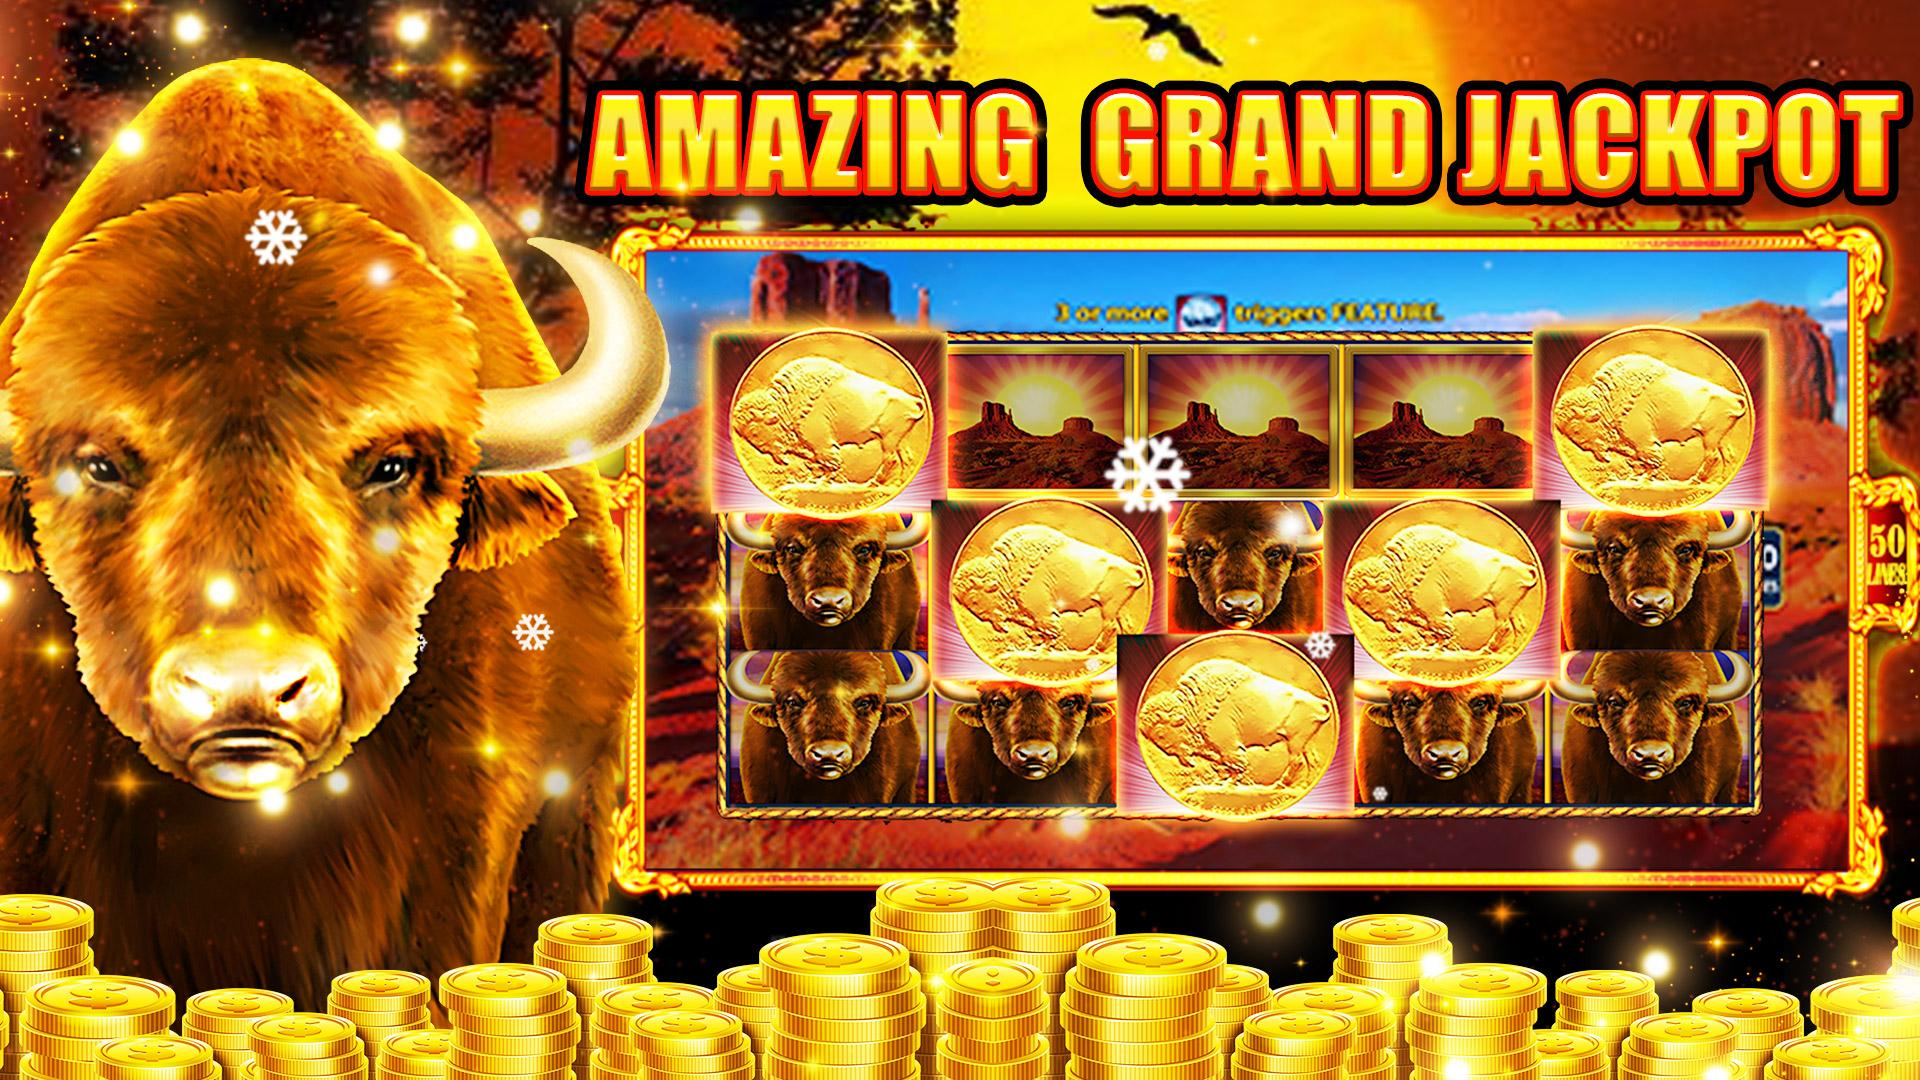 Grand Jackpot Slots Pop Vegas Casino Free Games 1.0.44 Screenshot 11